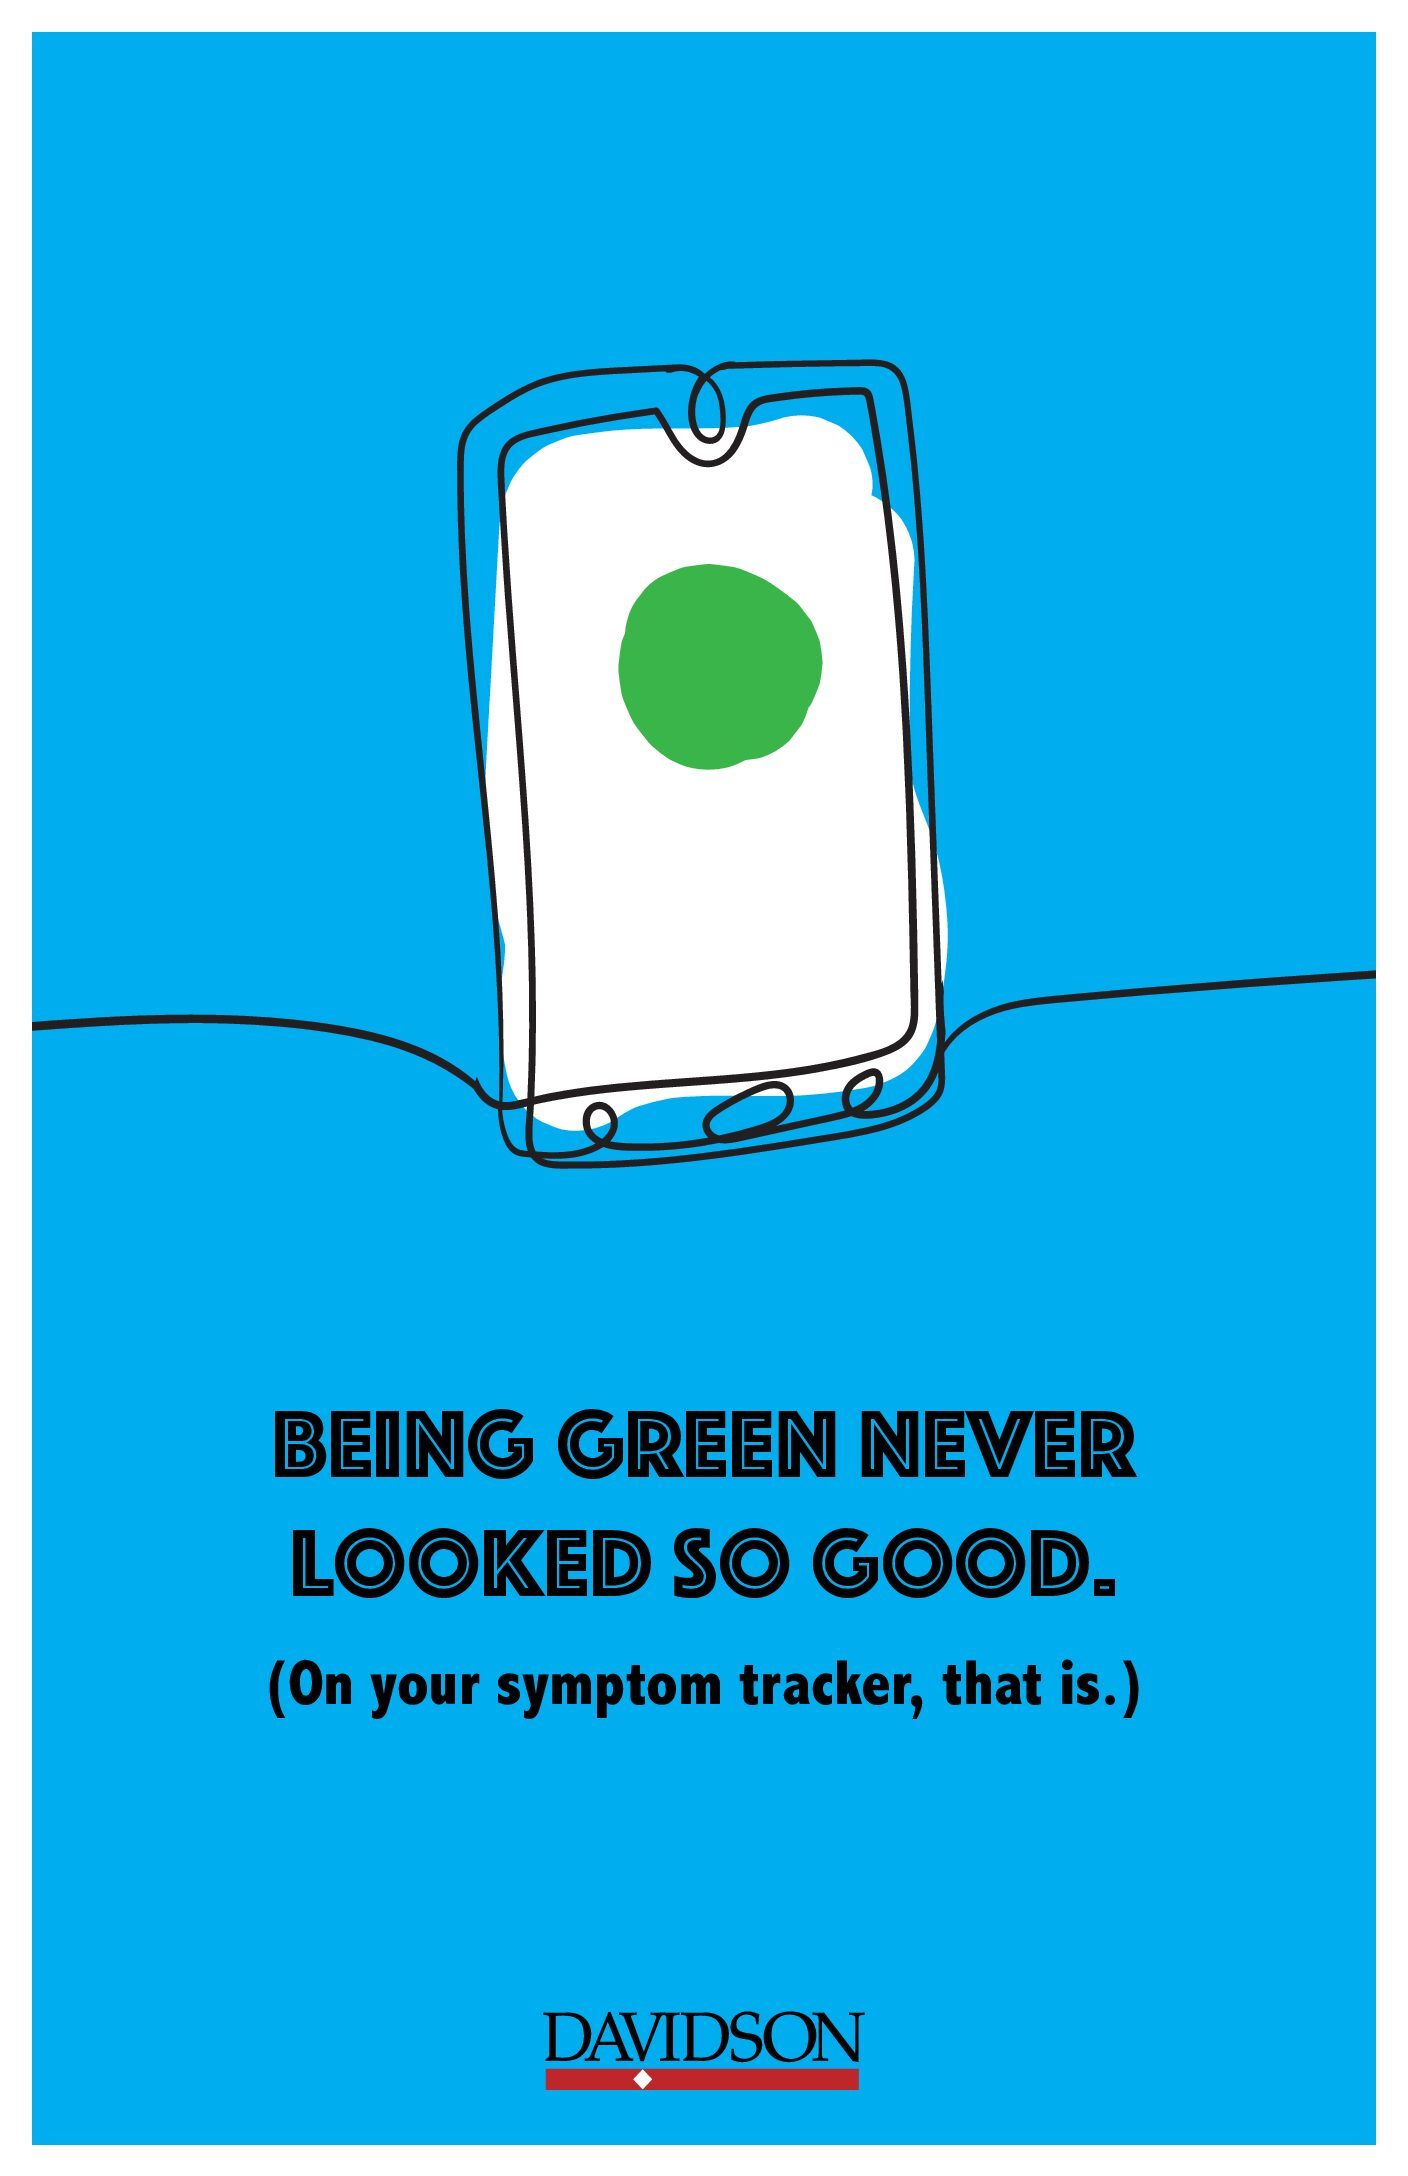 """""""Being green never looked so good. On your symptom tracker, that is"""" with sketch of phone displaying green circle 11x17"""